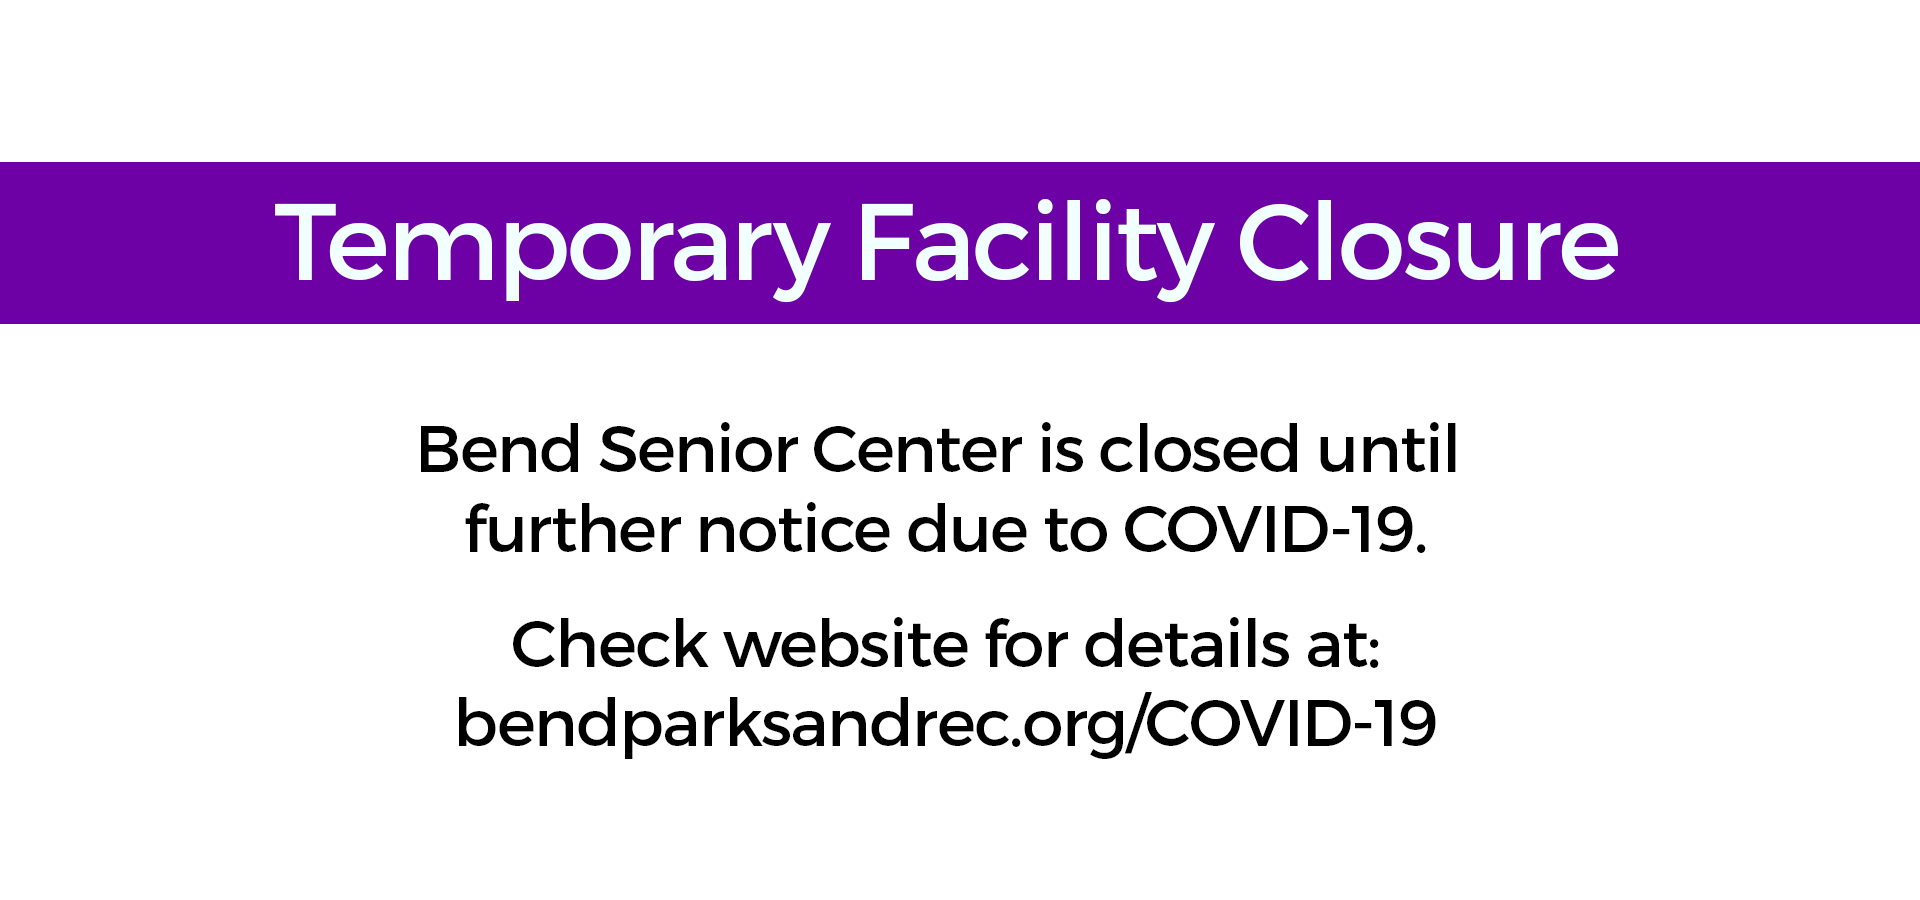 Temporary Facility Closure: Bend Senior Center is closed until further notice due to COVID. Check website for details at www.bendparksandrec.org/covid-19